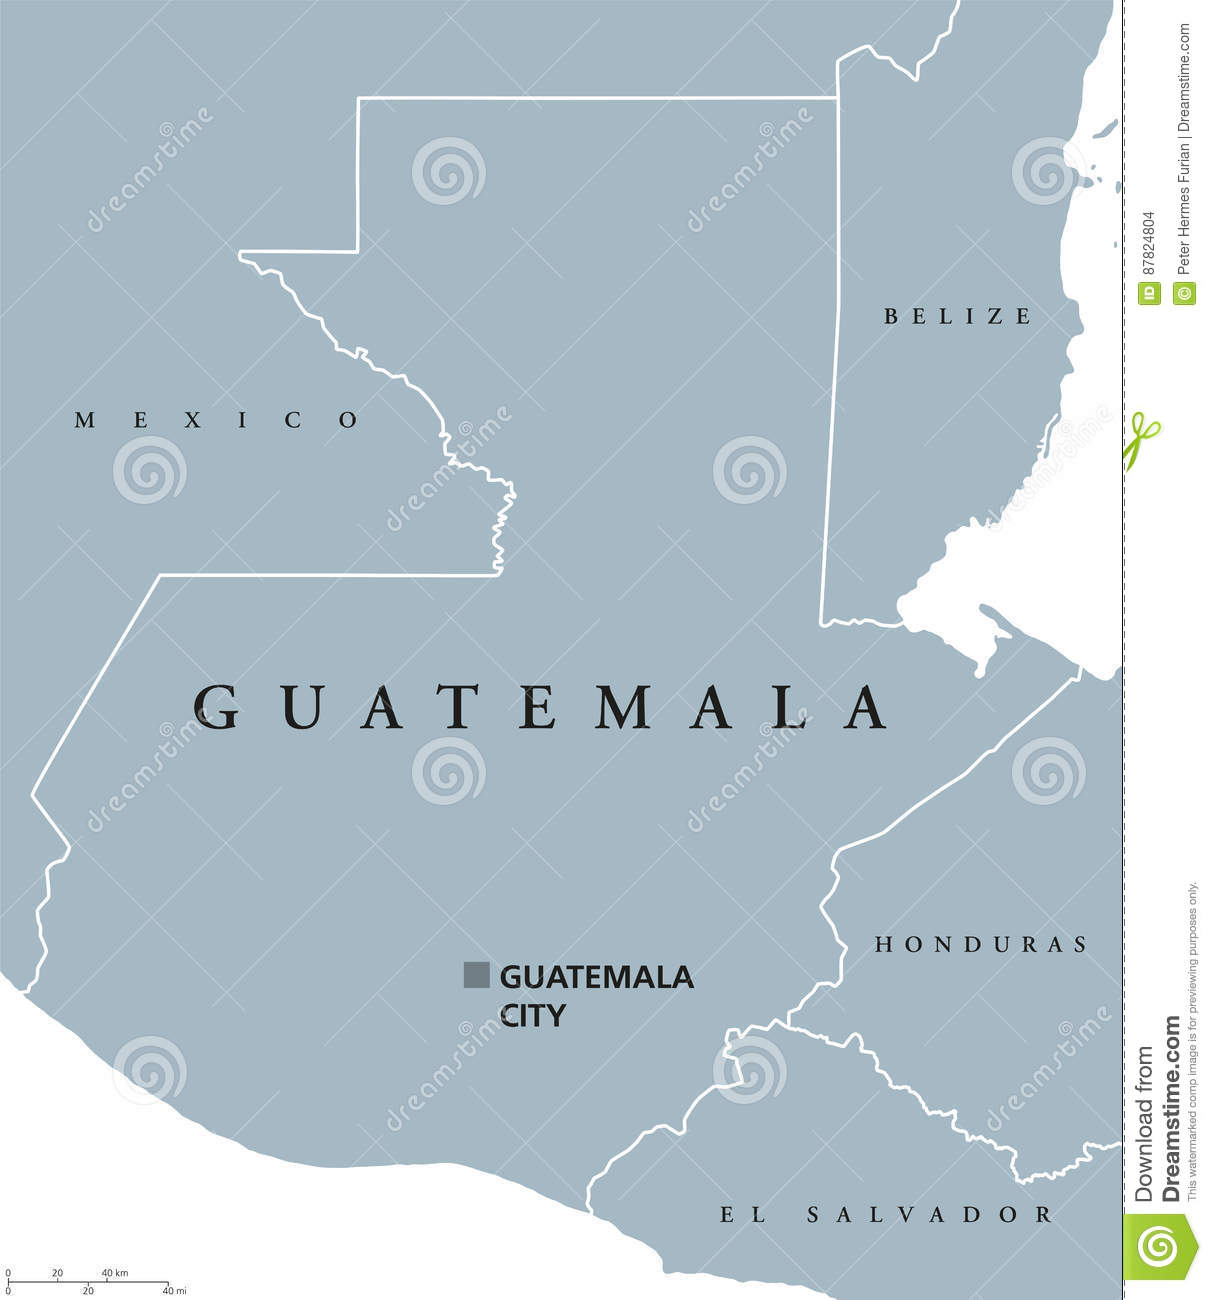 Guatemala political map stock vector. Illustration of background ...